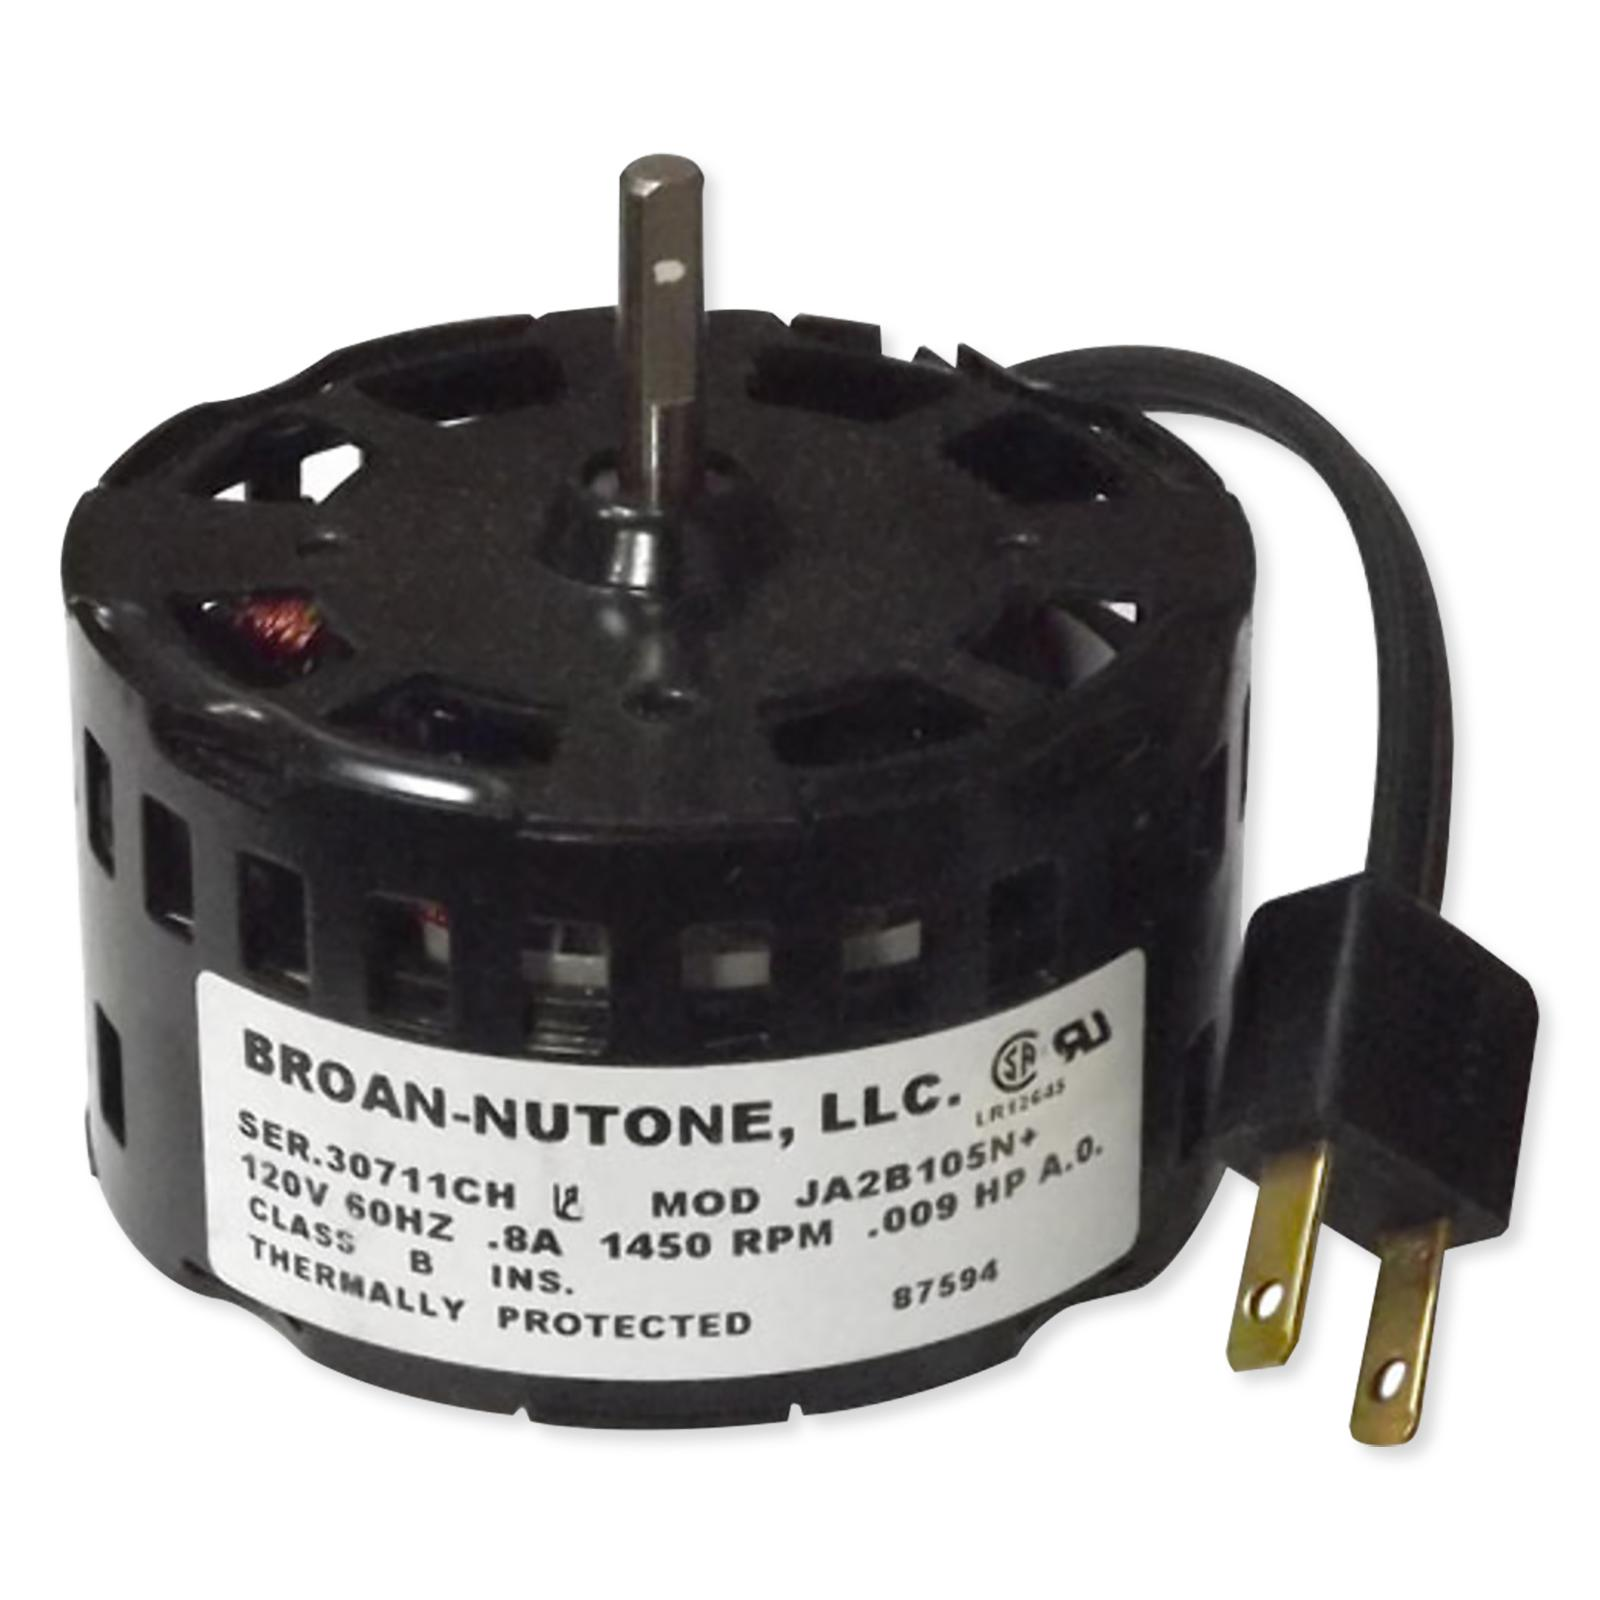 Nutone replacement fan motor for model 671r for Nutone ls80 replacement motor